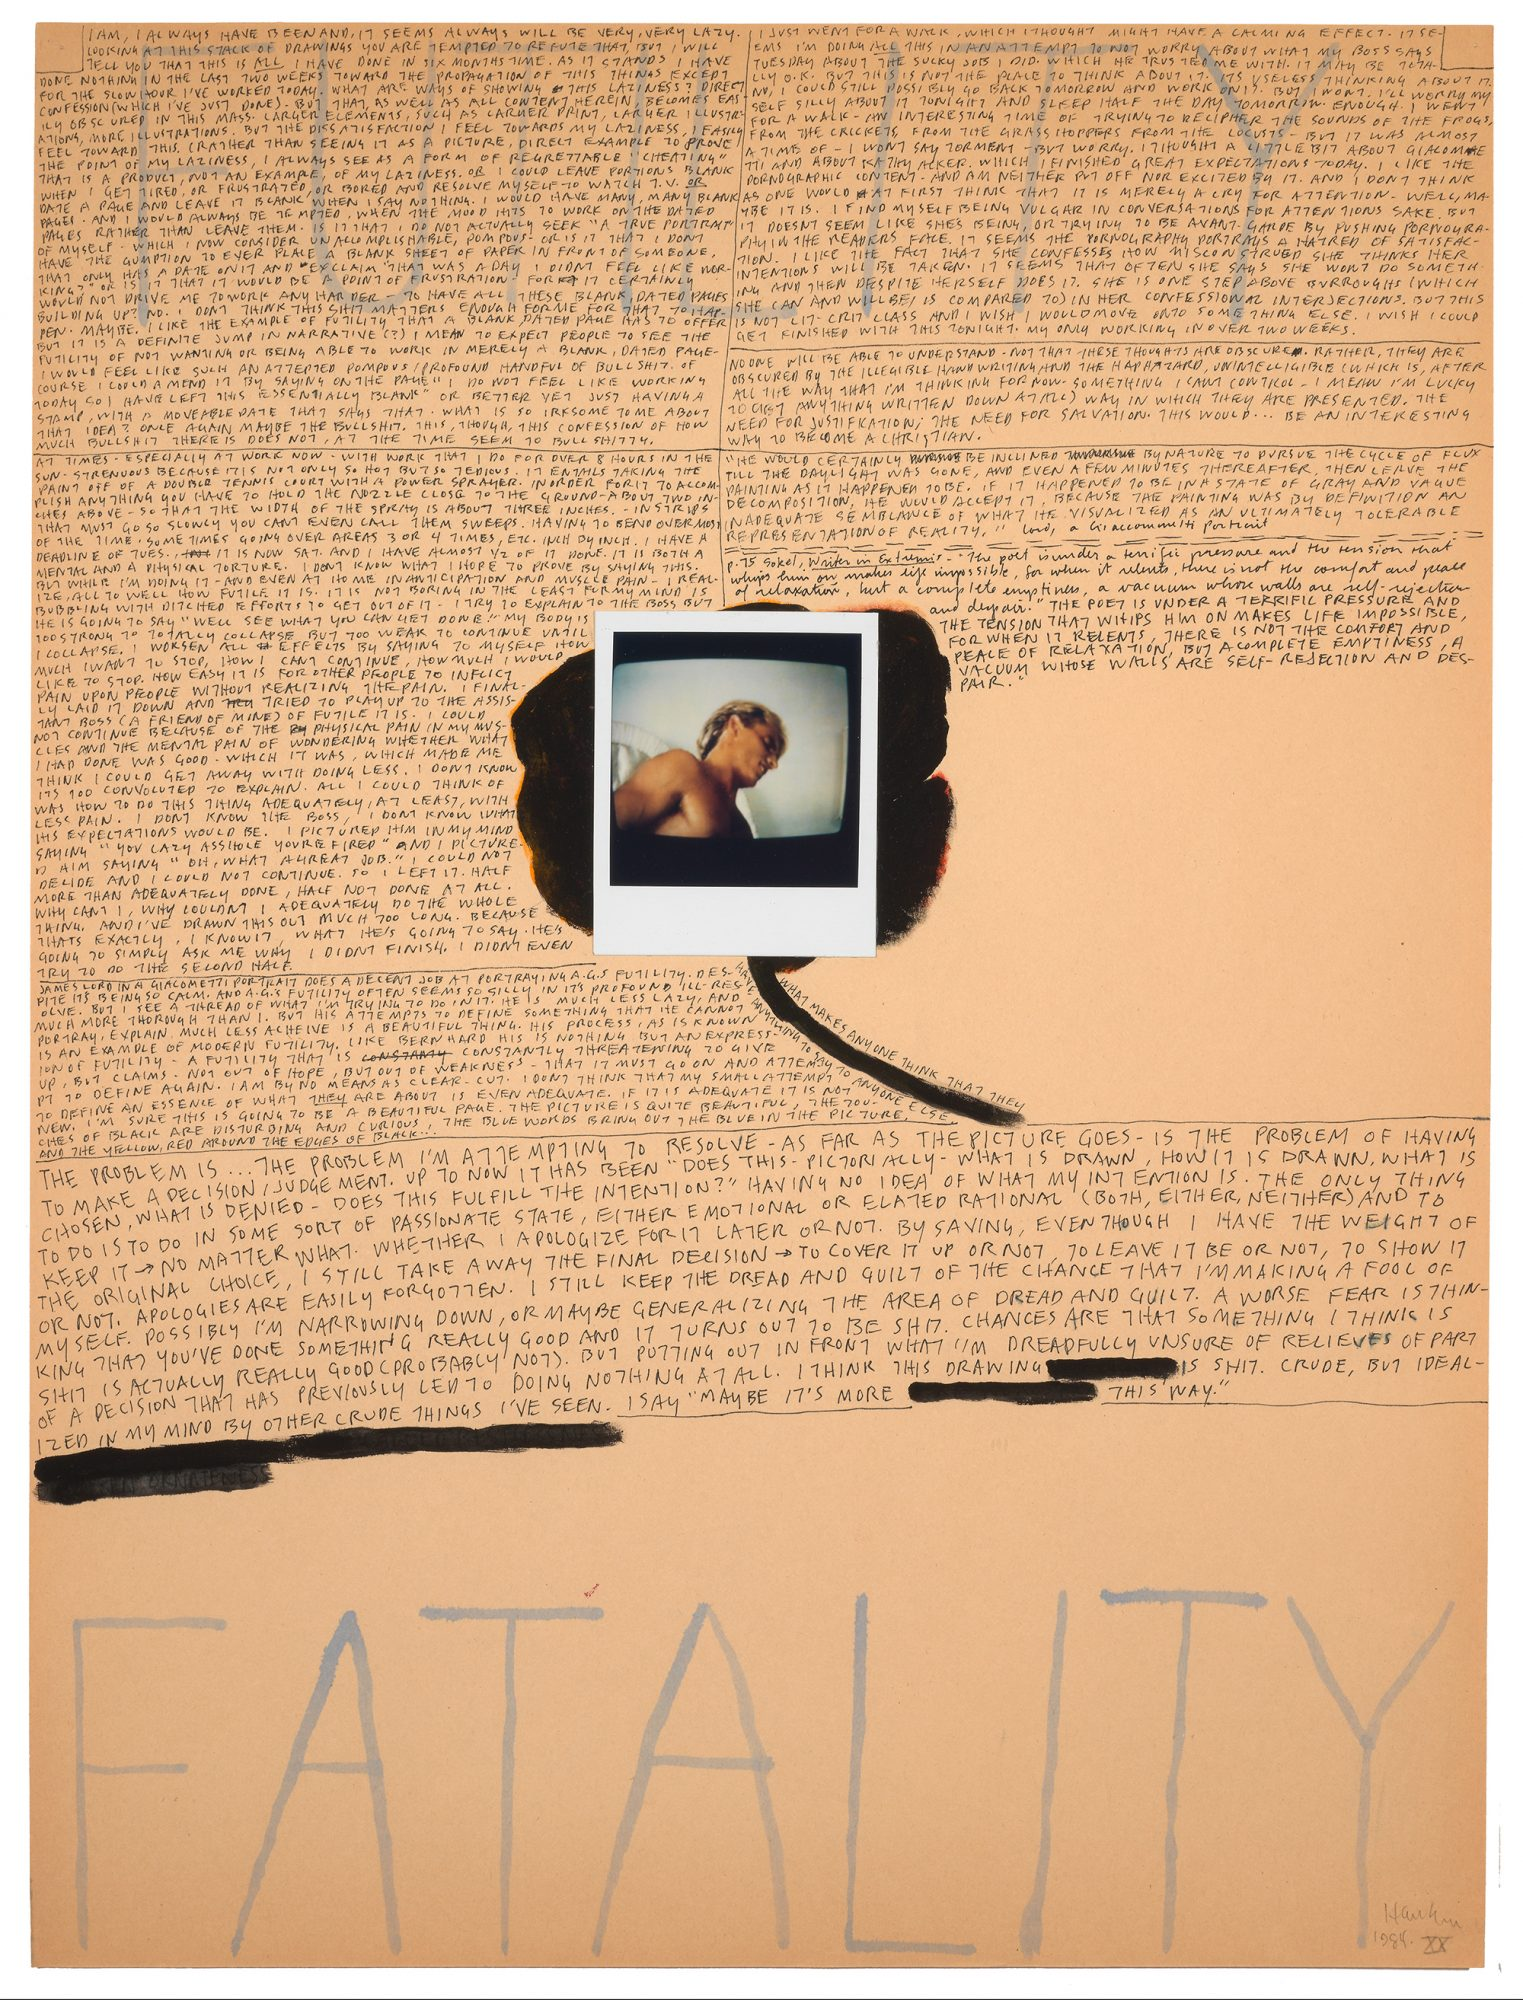 Richard Hawkins (American, b. 1961), Still III: An Illuminating Manuscript, page 20, 1984, acrylic, polaroid, and ink on paper, 23 15/16 × 17 15/16 in. Gift of Elizabeth Mize Currie, Class of 1978.